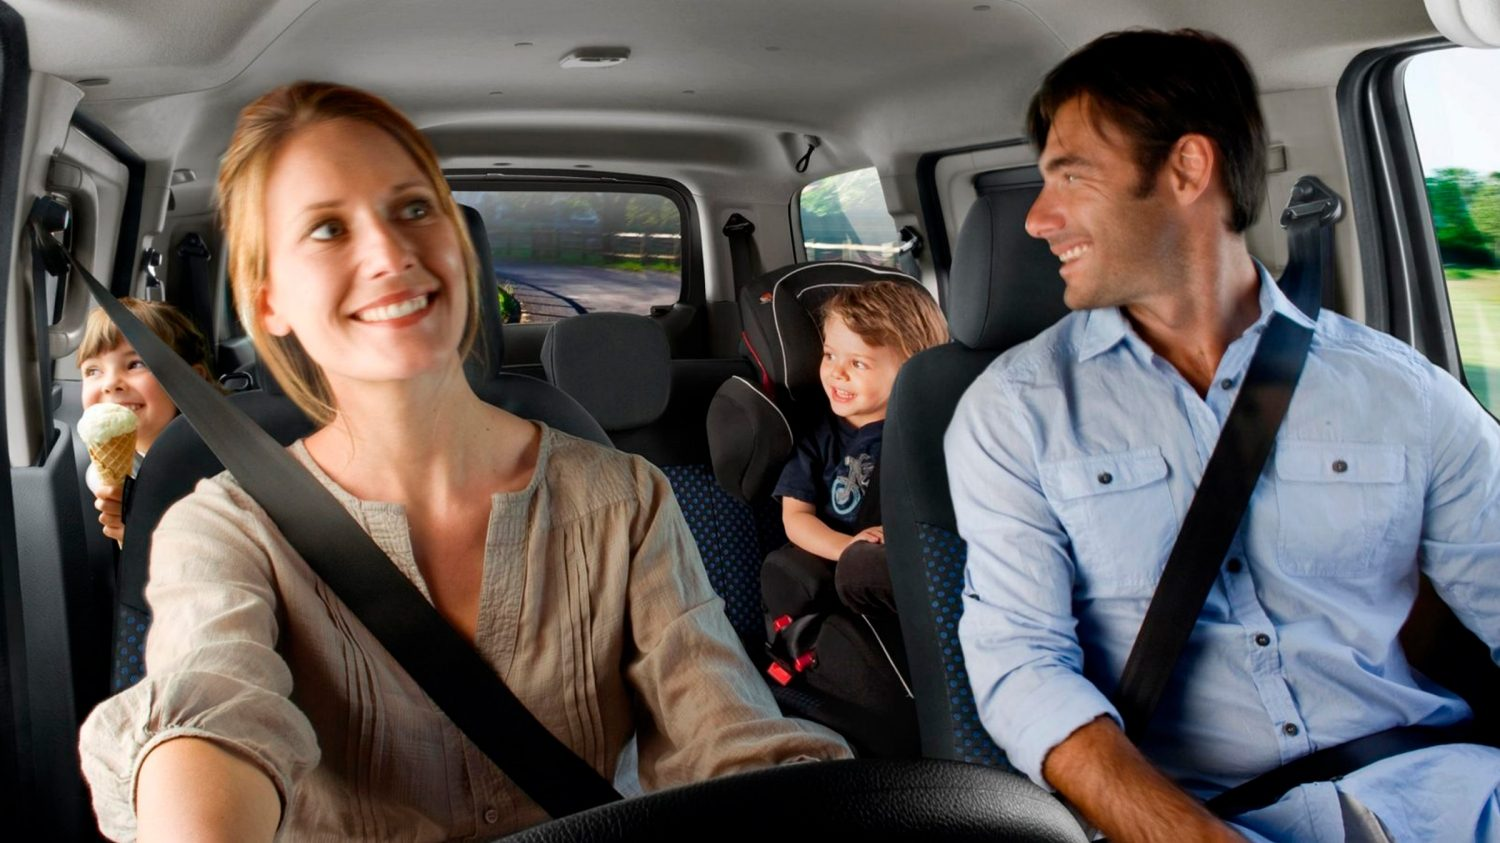 New Nissan e-NV200 Combi interior view with family in the car